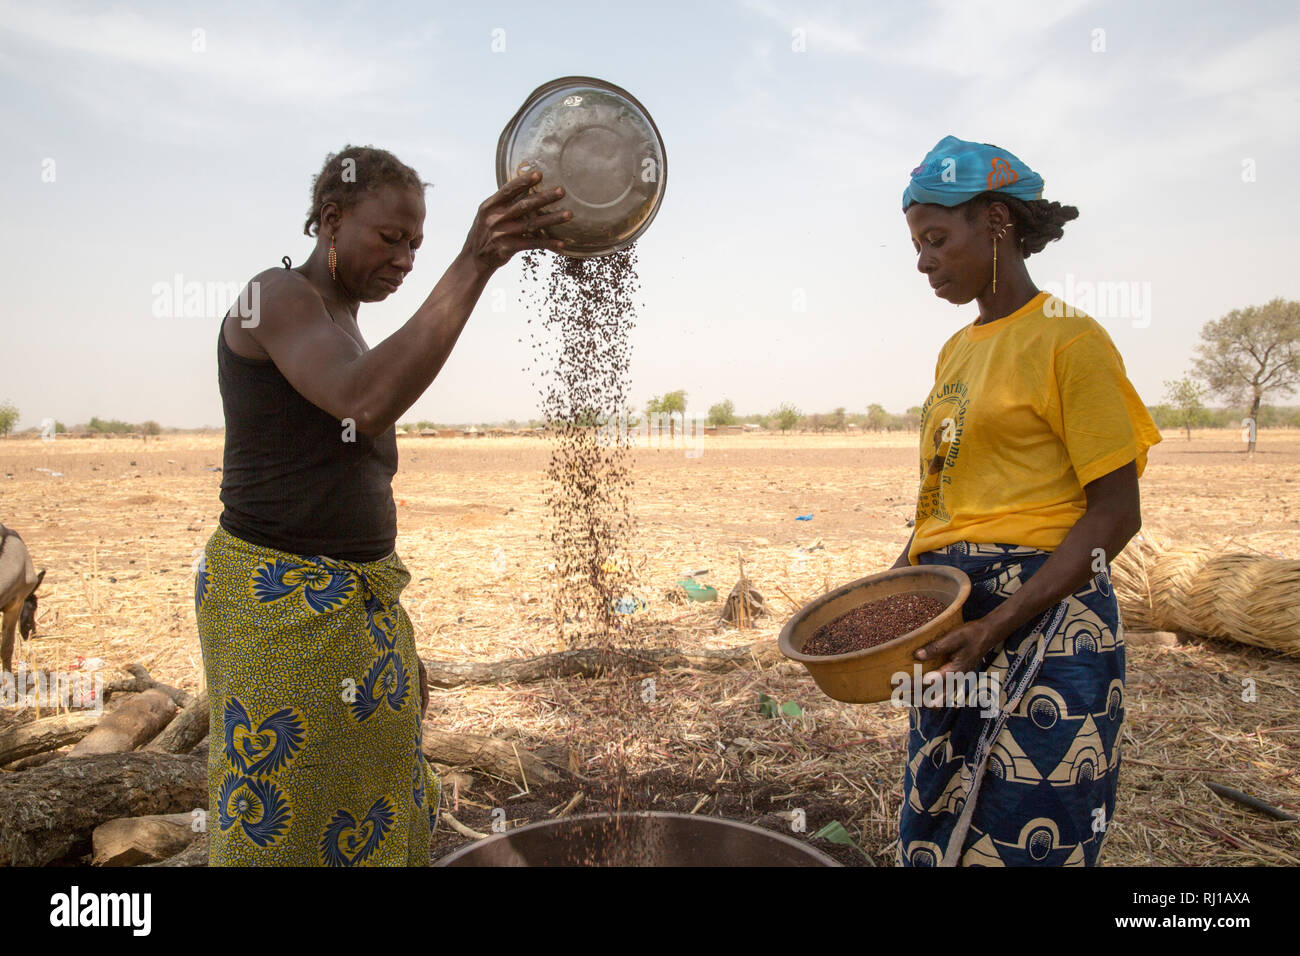 Kourono village,Yako province, Burkina Faso. left, Minata Guiguemde, 37, with 5 children, and Kadissa Seogo, 30 with 2 children, winnowing sorghum. Kadissa benefitted from the goat project. Stock Photo